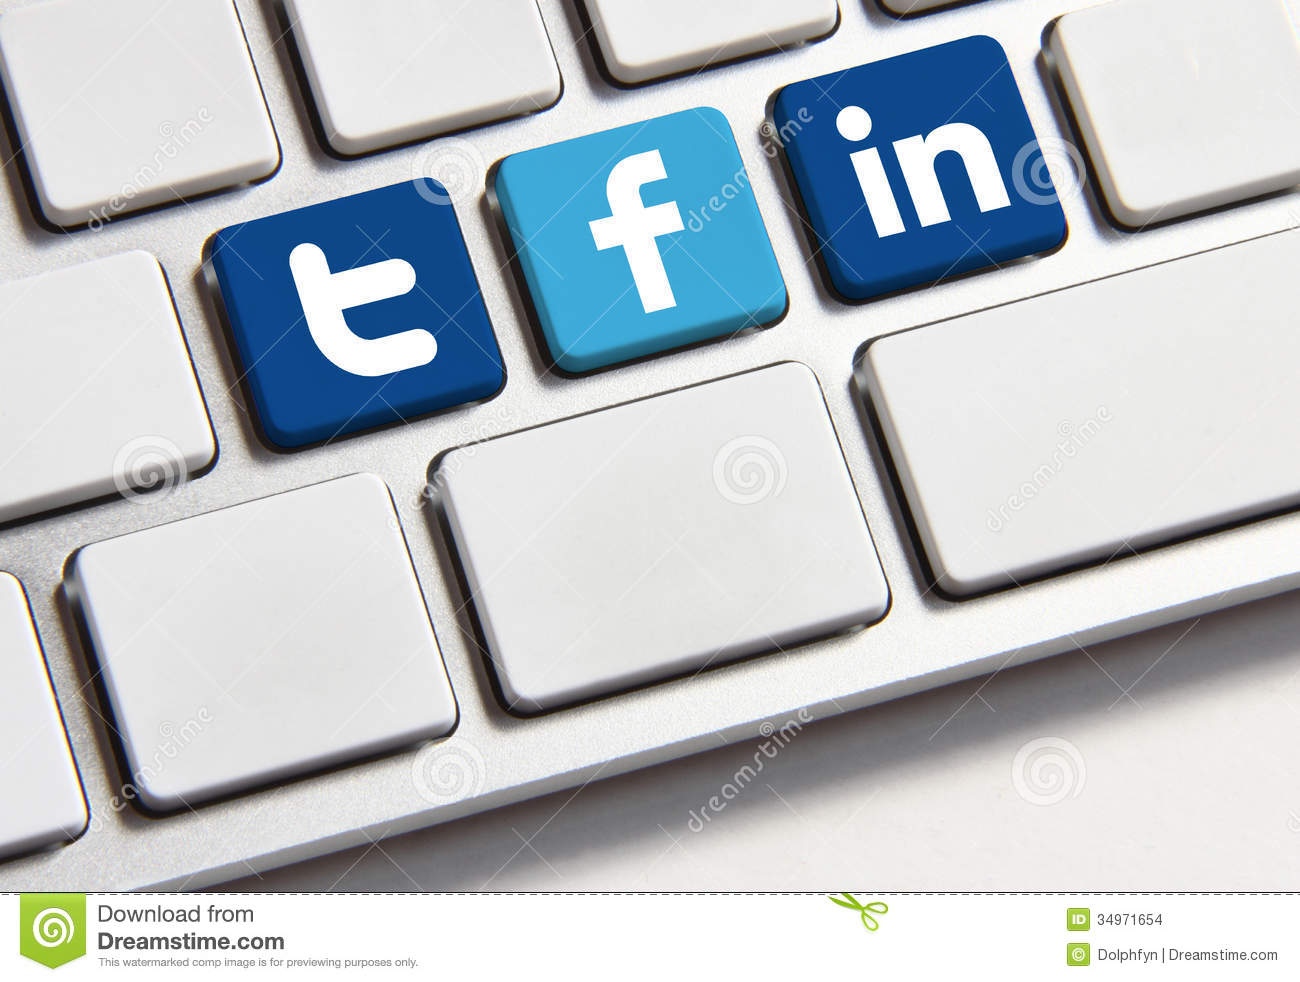 Twitter facebook clipart picture royalty free library Linkedin Logos Clipart - Clipart Kid picture royalty free library